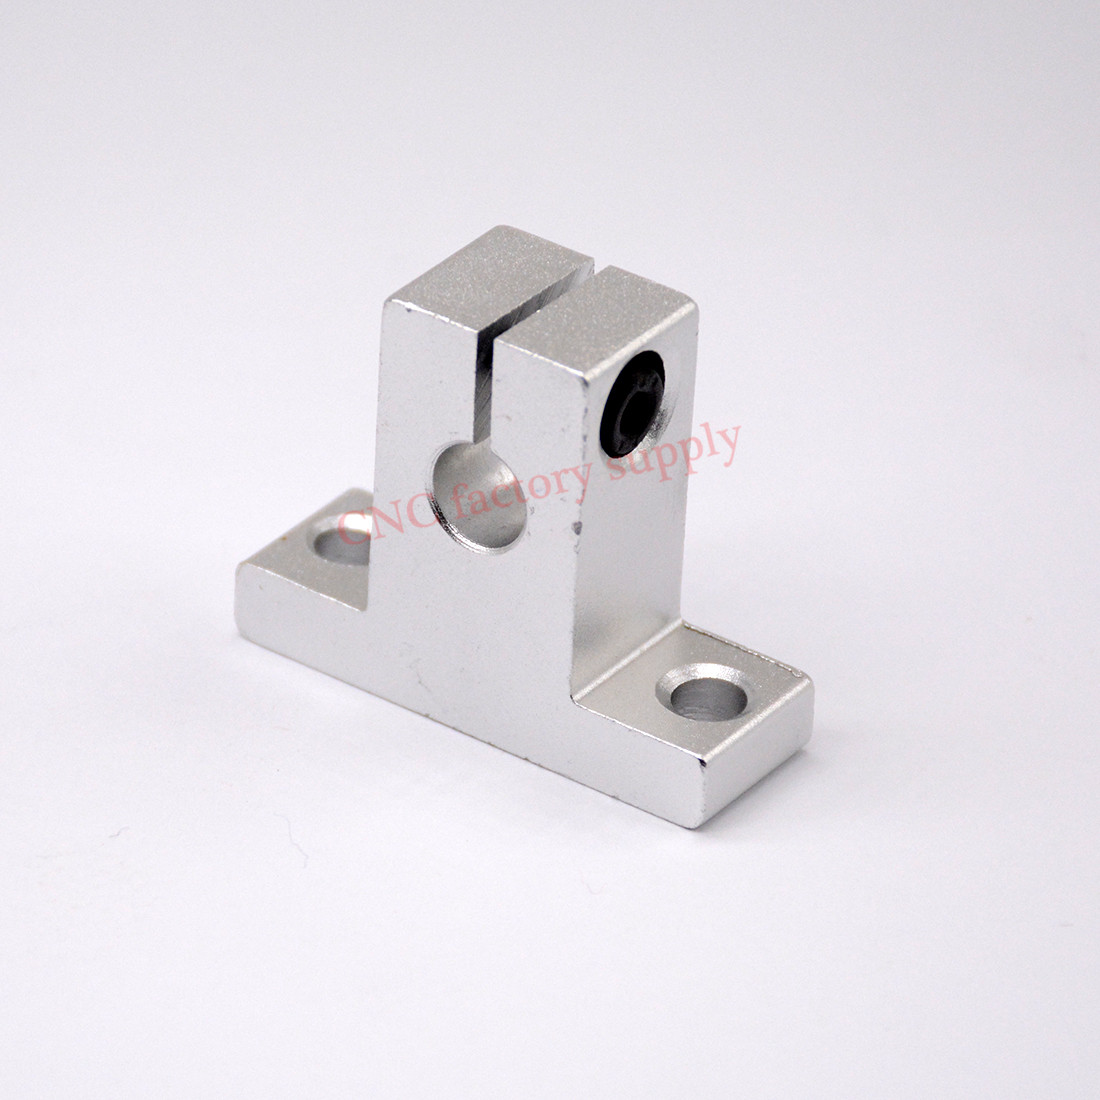 Hot sale 1pc SK20 20mm linear bearing rail shaft support XYZ Table CNC Router SH20A xyz table cnc milling sk20 20mm linear rail motion shaft support